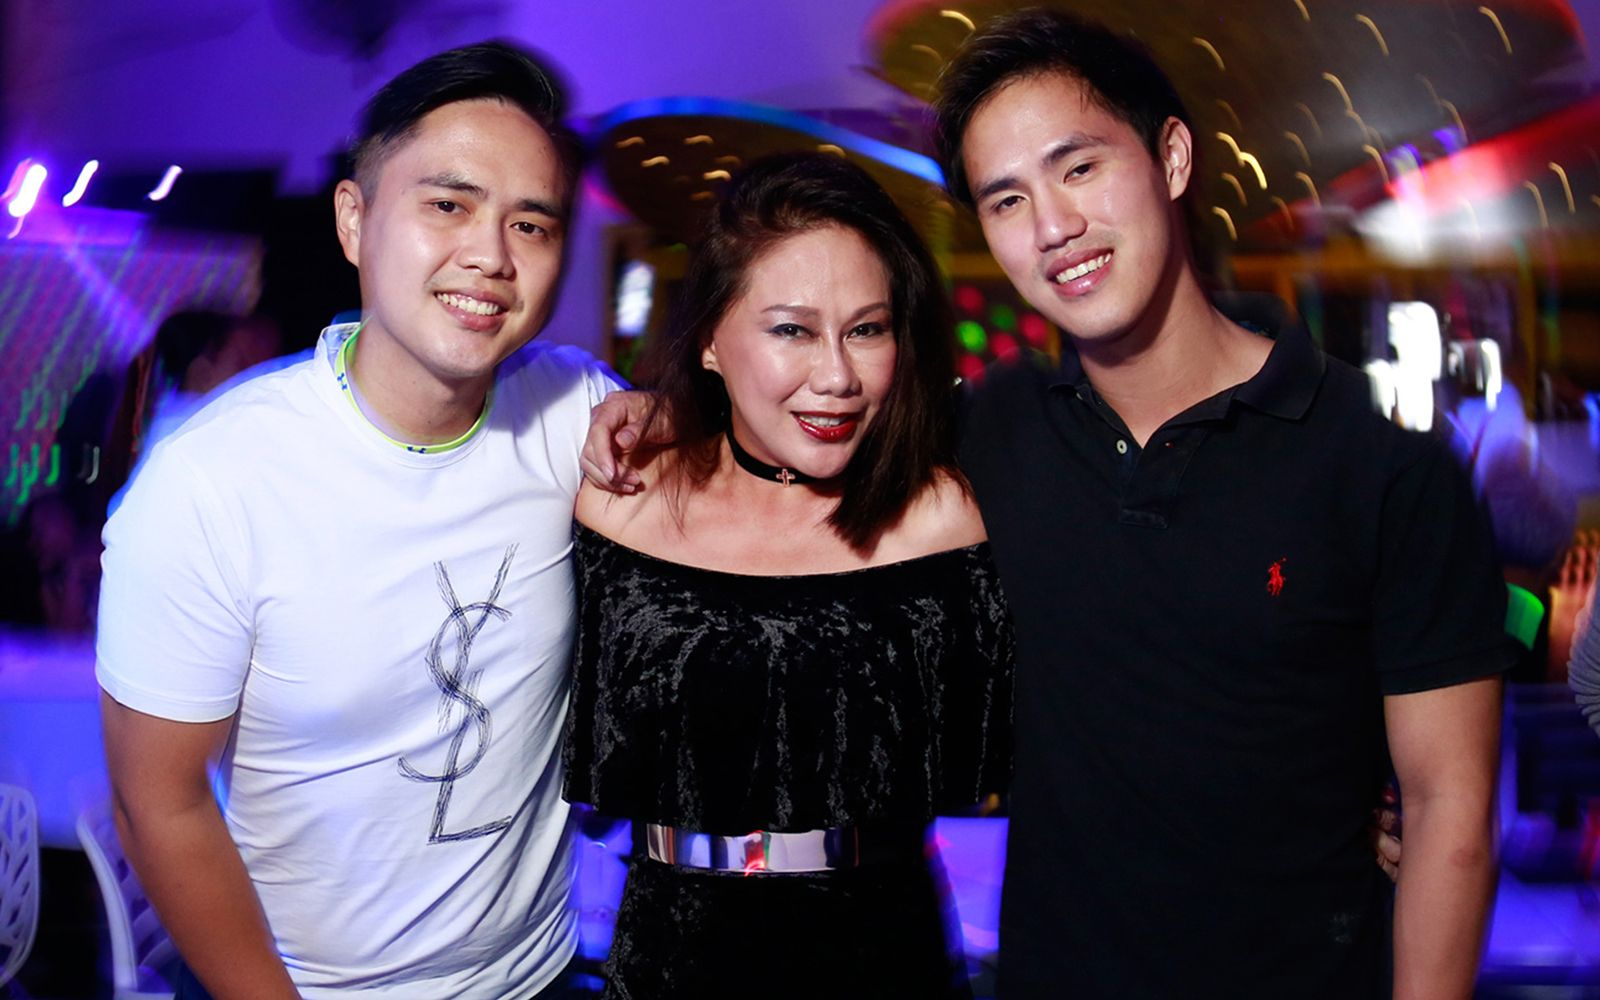 Brian Choo, Michele Kwok and Mark Choo